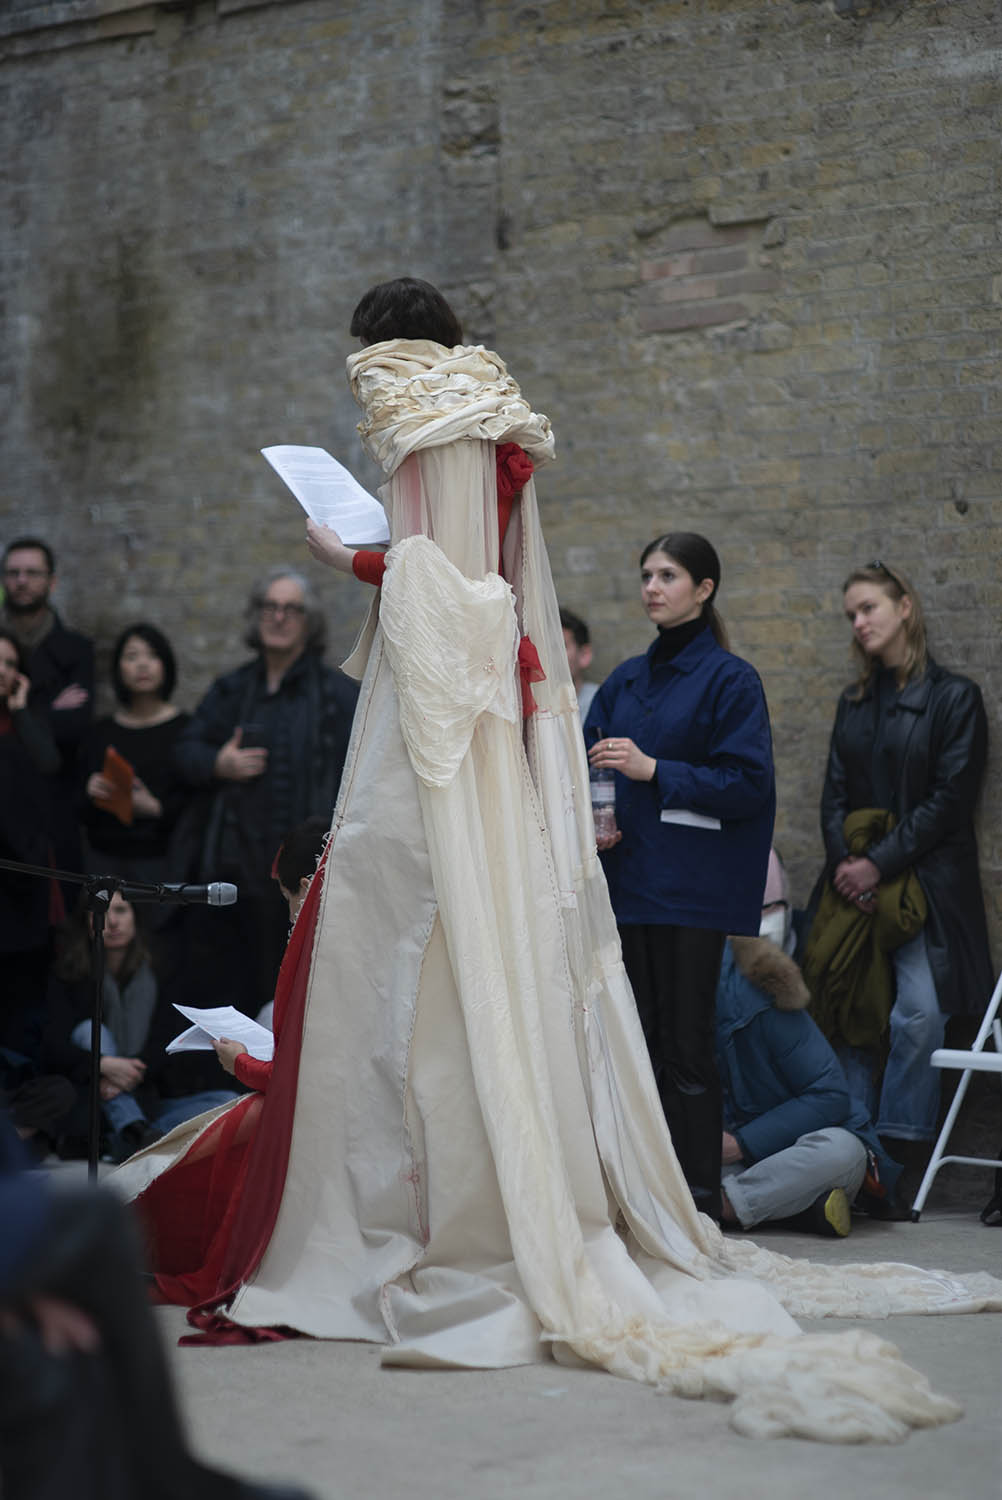 How Deep Is Your Love (2019–20). Performance wearing sculptures (Scrofula II and Dress for a Blemmye). Performed at As If, Goldsmiths CCA, 2020. Courtesy Rosie Taylor